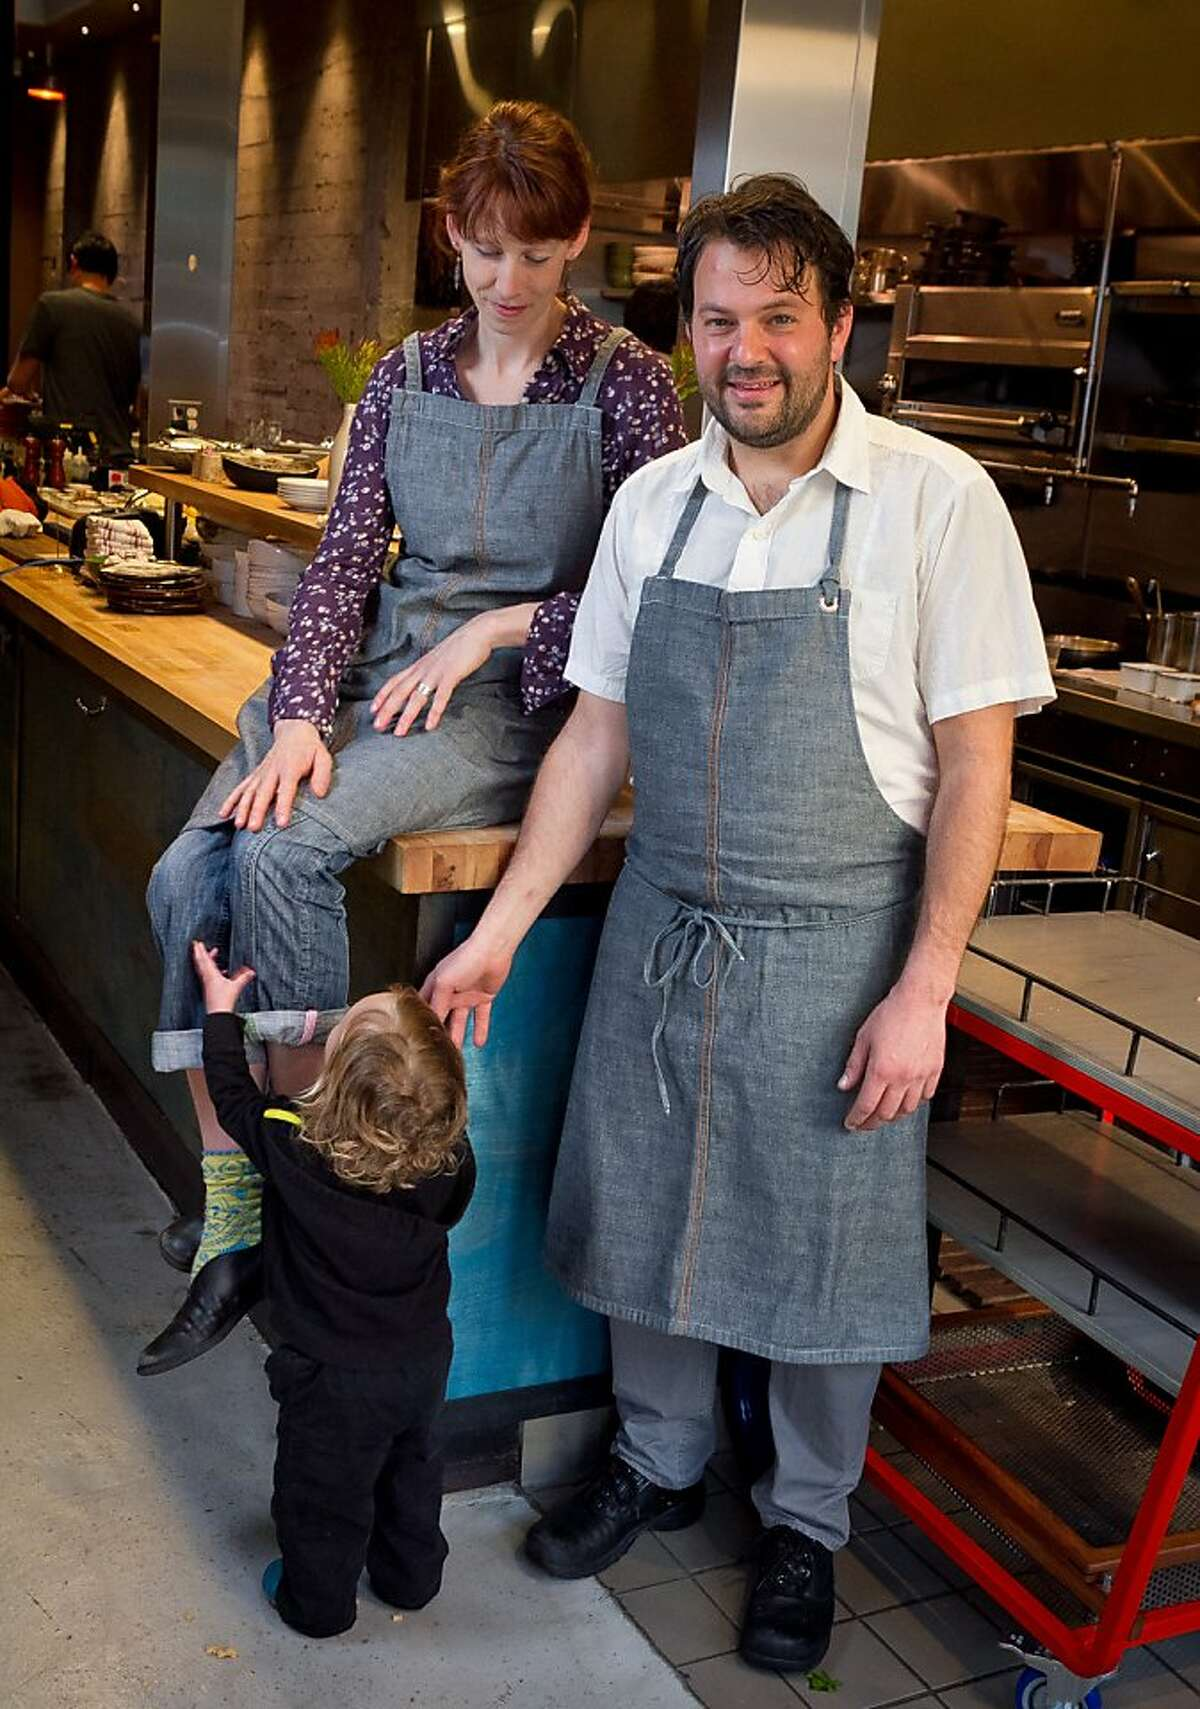 Owner/chef husband and wife team Stuart Brioza and Nicole Krasinski with their son Jasper in the kitchen of State Bird Provisions in San Francisco, Calif., on Saturday, February 25th, 2012.